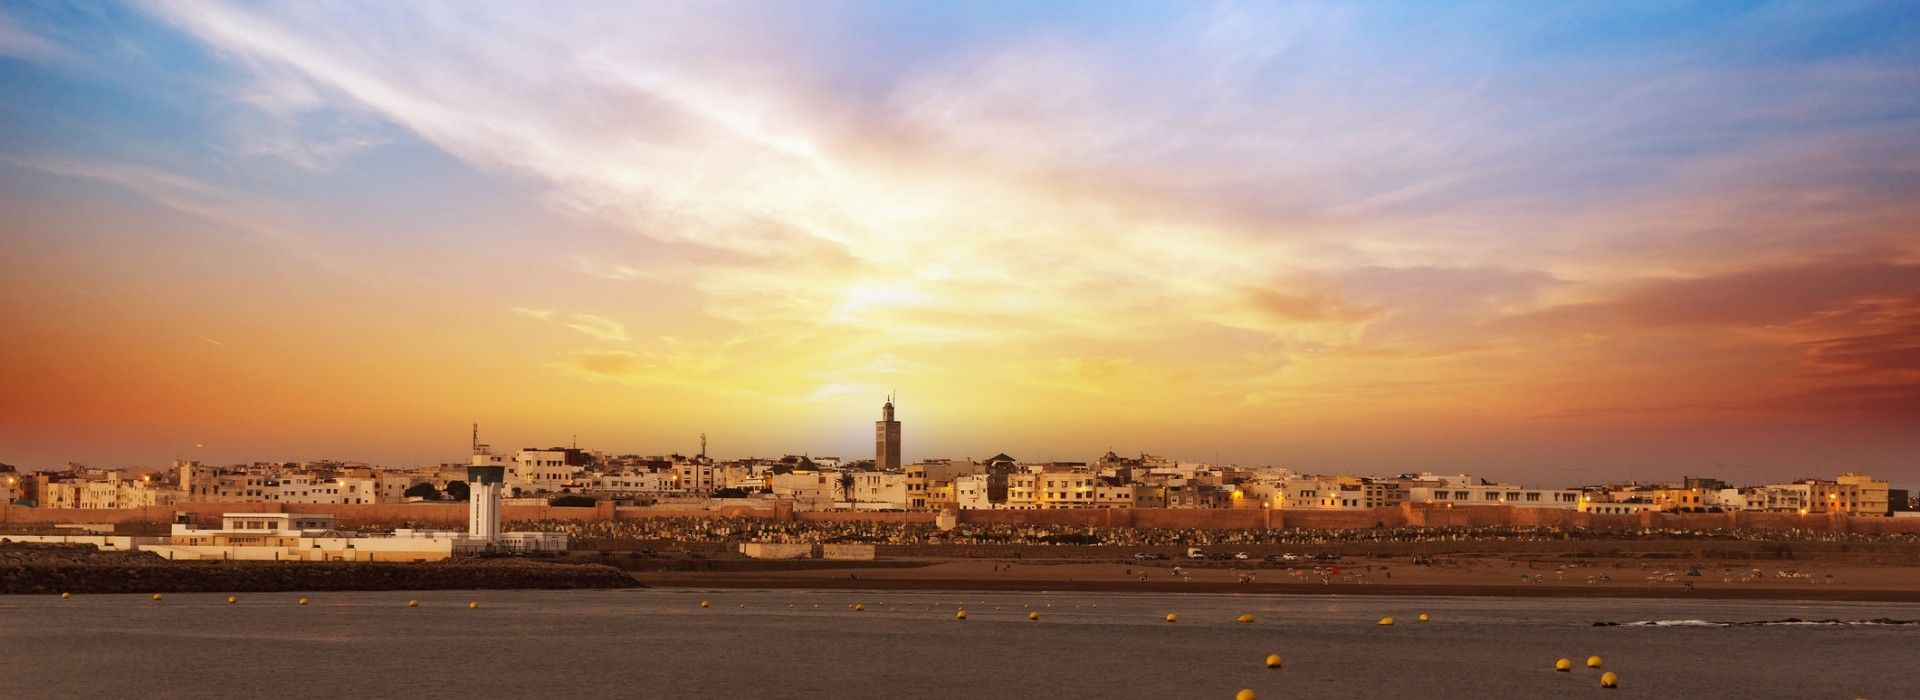 Sightseeing, attractions, culture and history Tours in Marrakech